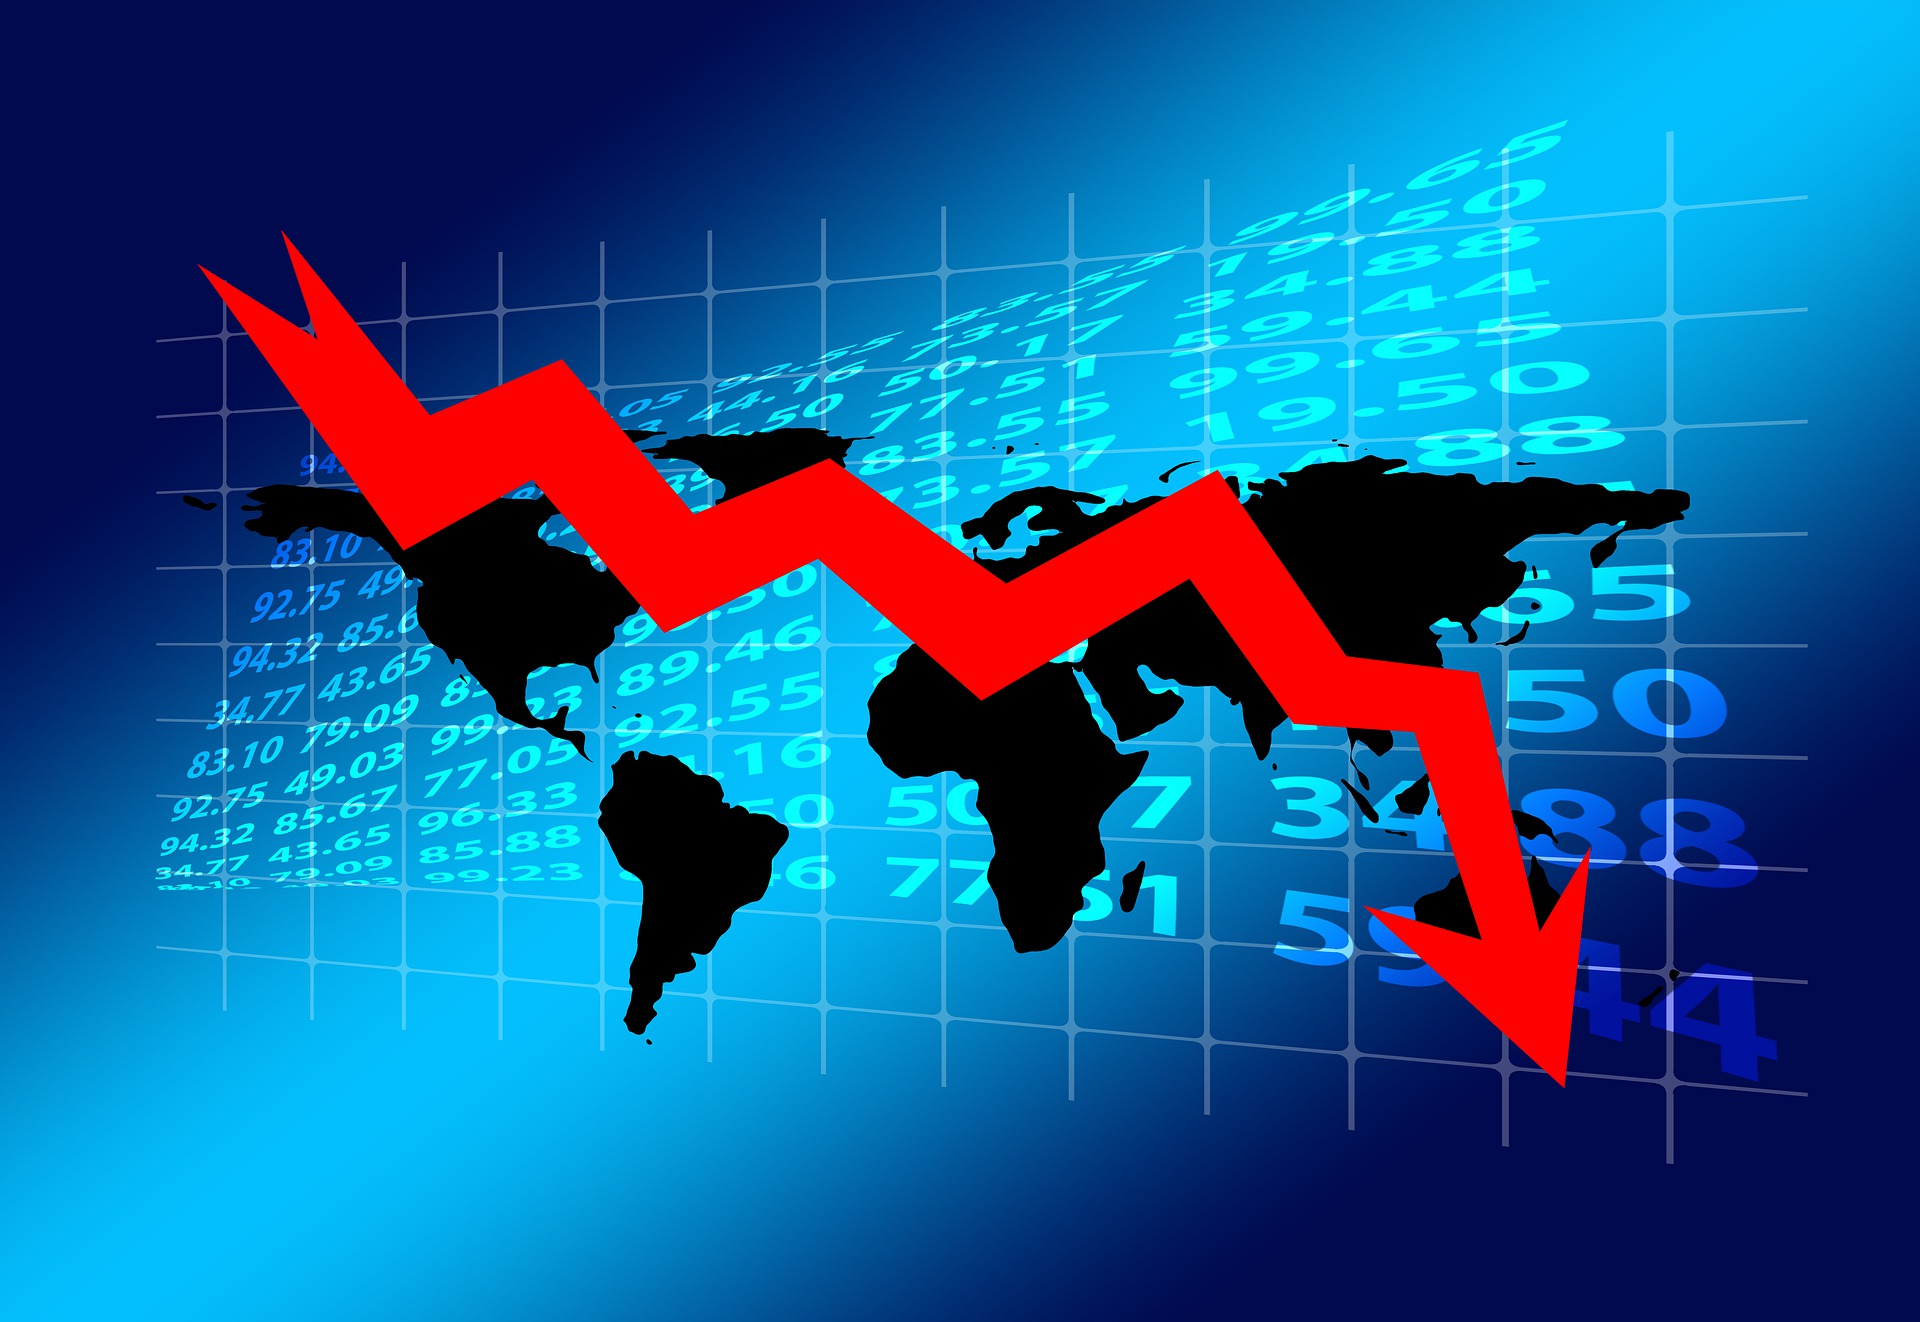 global recession 2020